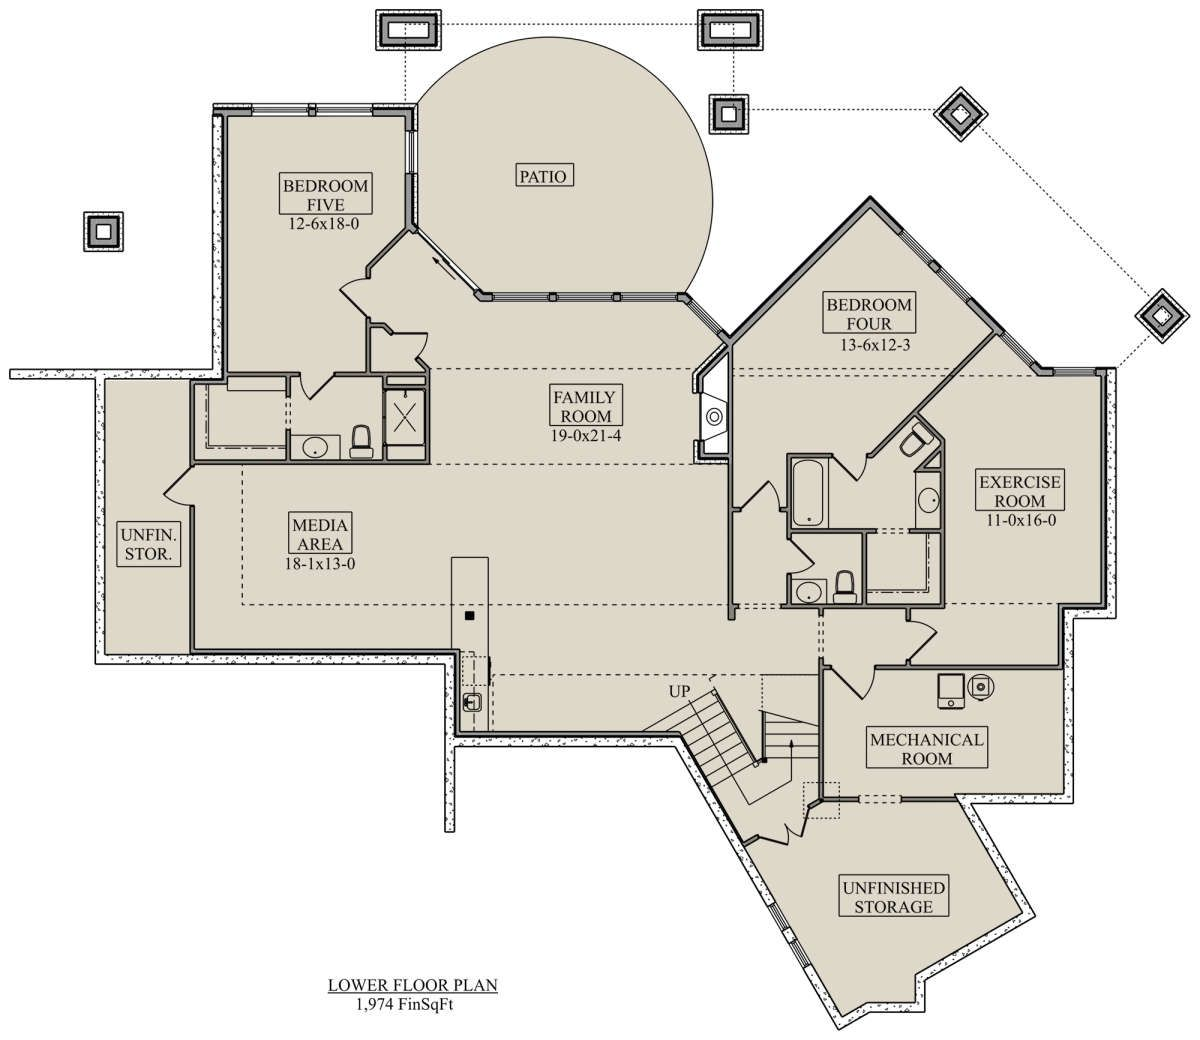 House Plan 5631 00107 Contemporary Plan 3 587 Square Feet 3 Bedrooms 4 Bathrooms House Plans Contemporary House Plans House Floor Plans